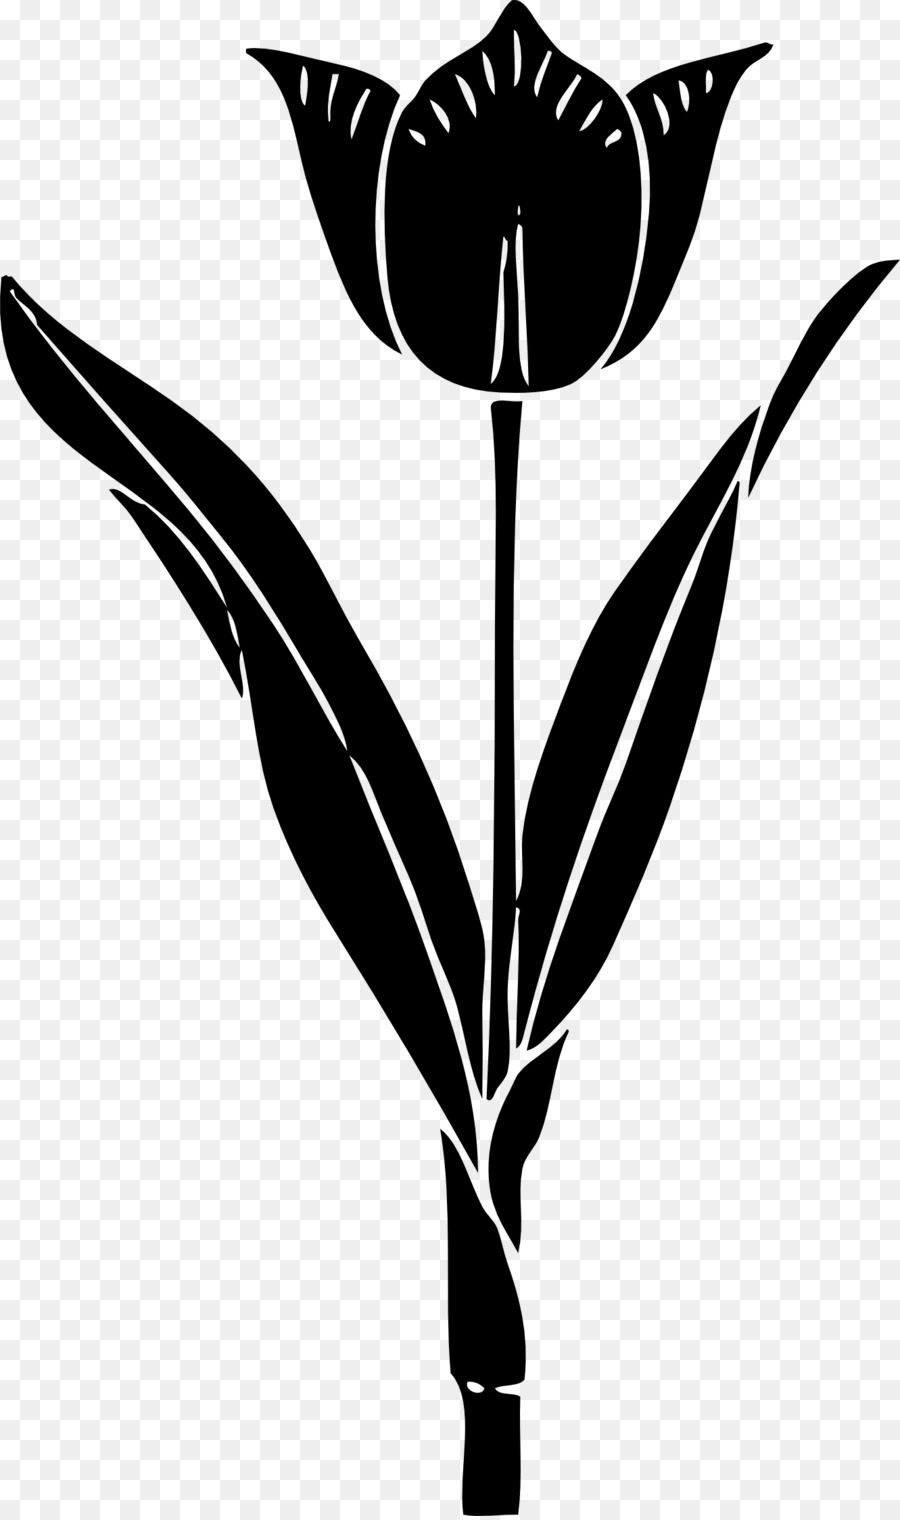 Silhouette Tulip Clip Art Black And White Flower Png Download